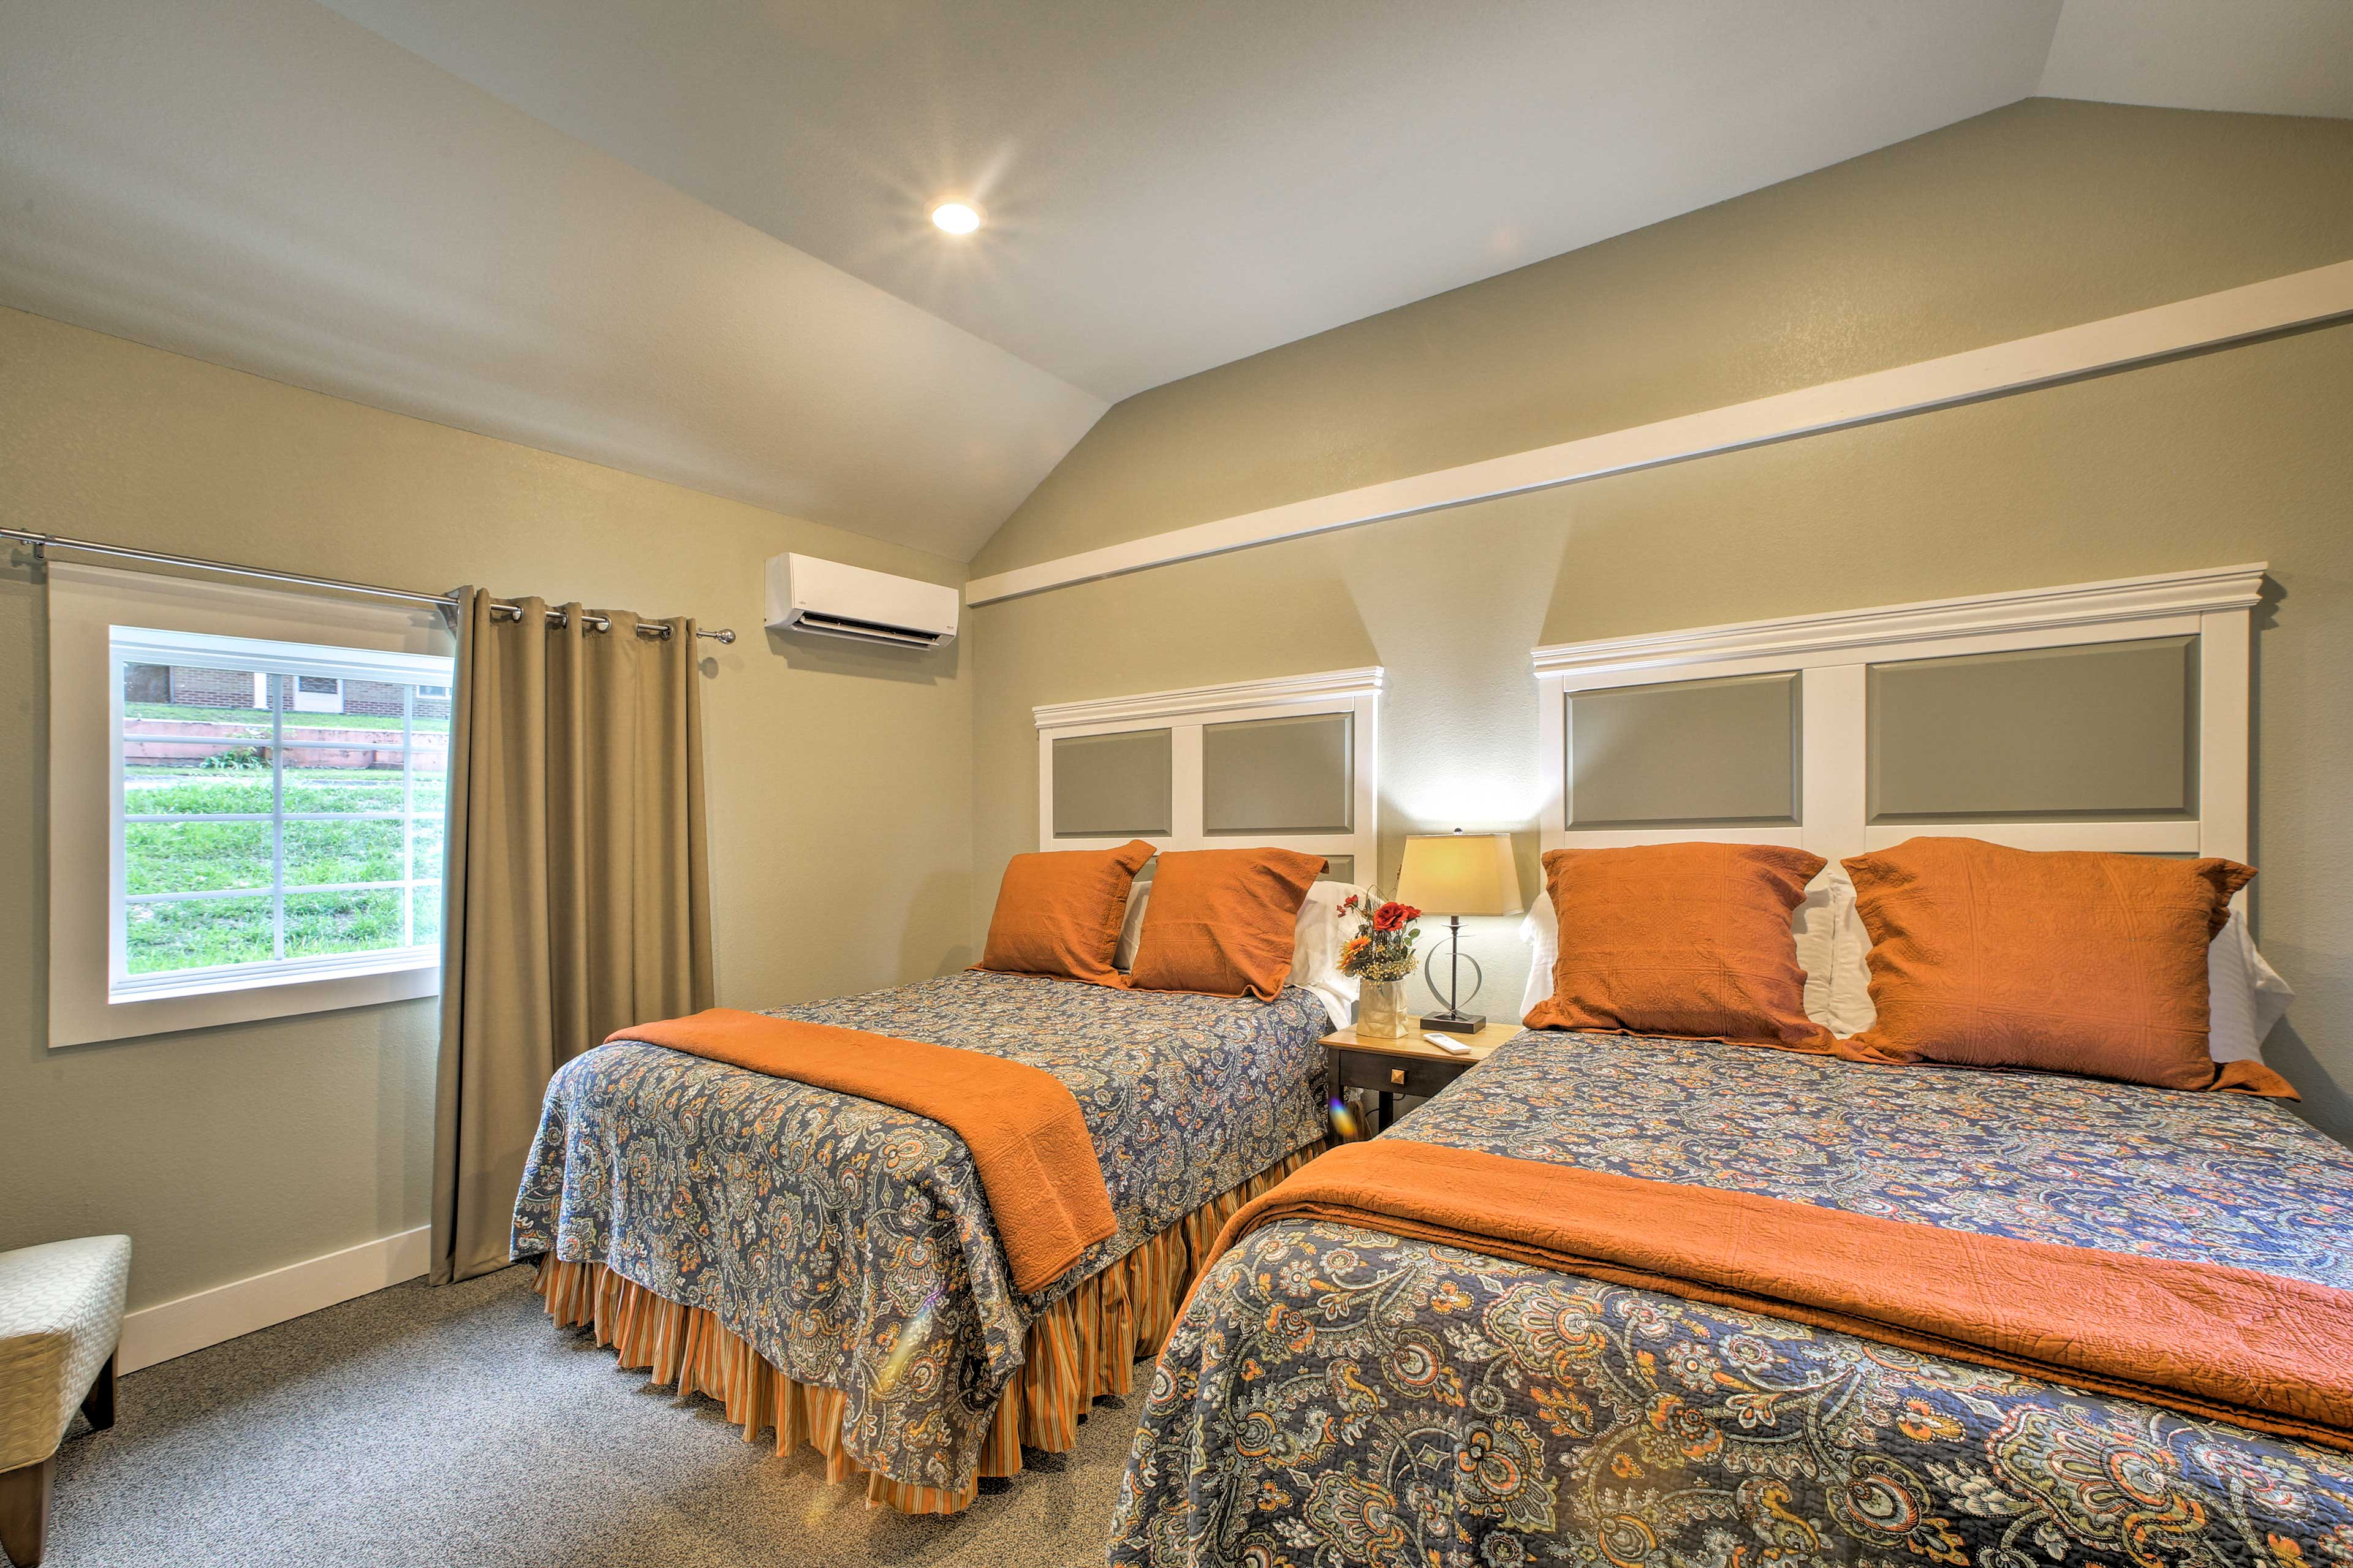 Climb under the covers of the 2 queen beds!